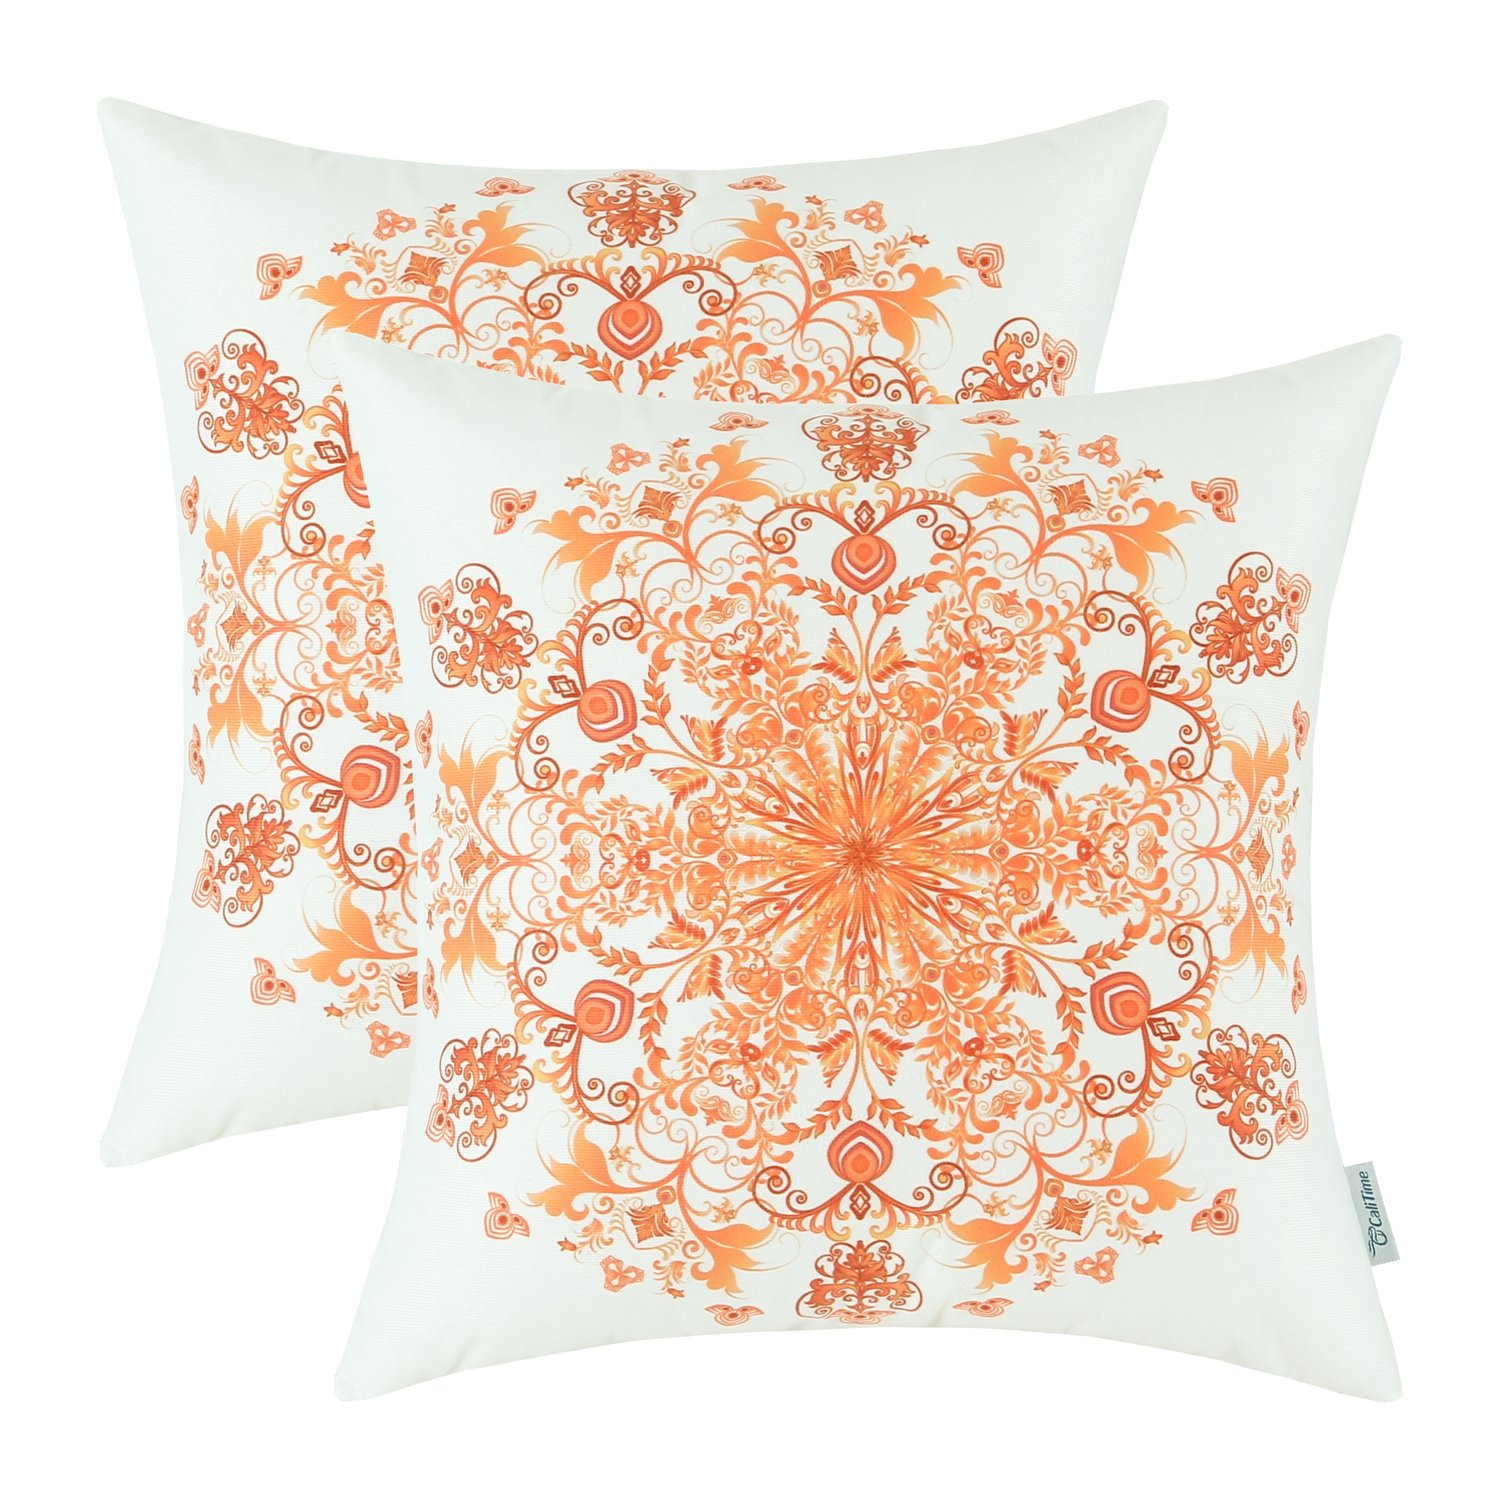 CaliTime Pack of 2 Cozy Fleece Throw Pillow Cases Covers for Couch Bed Sofa Vintage Mandala Snowflake Floral 20 X 20 Inches Orange Red